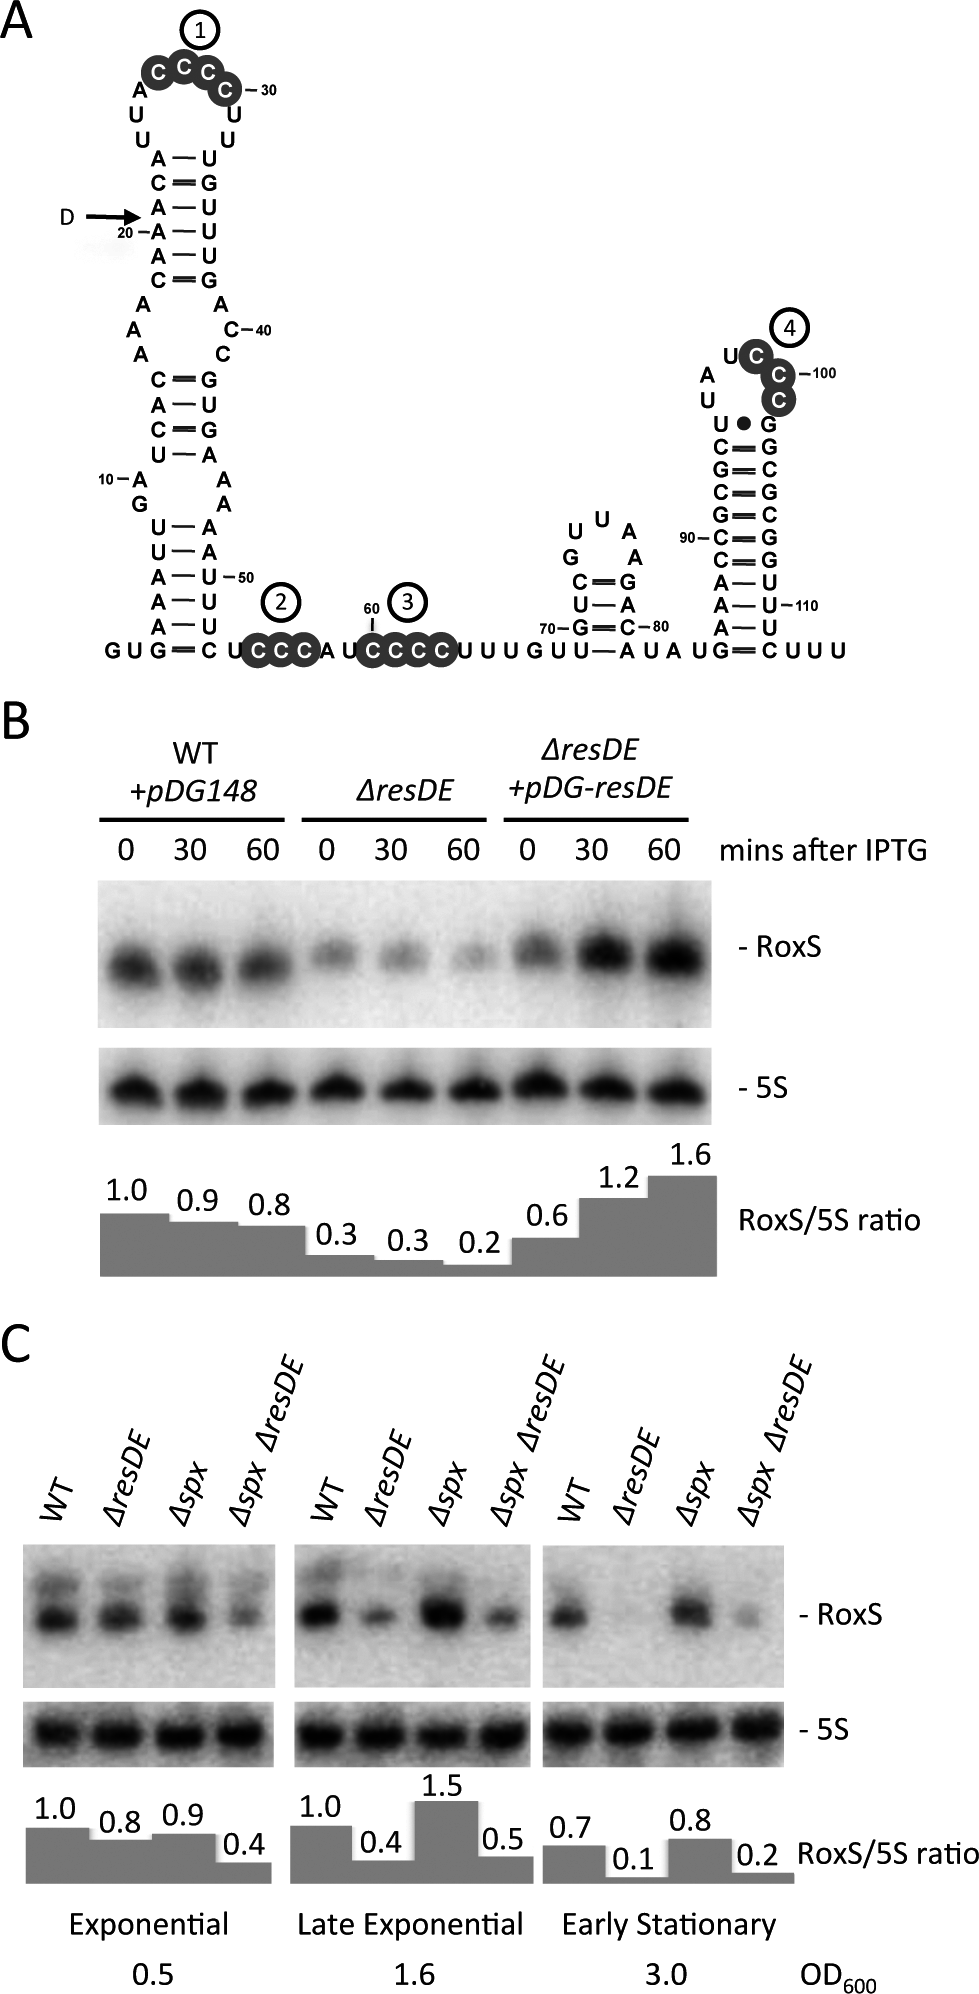 Regulation of RoxS expression by the ResDE two-component system.